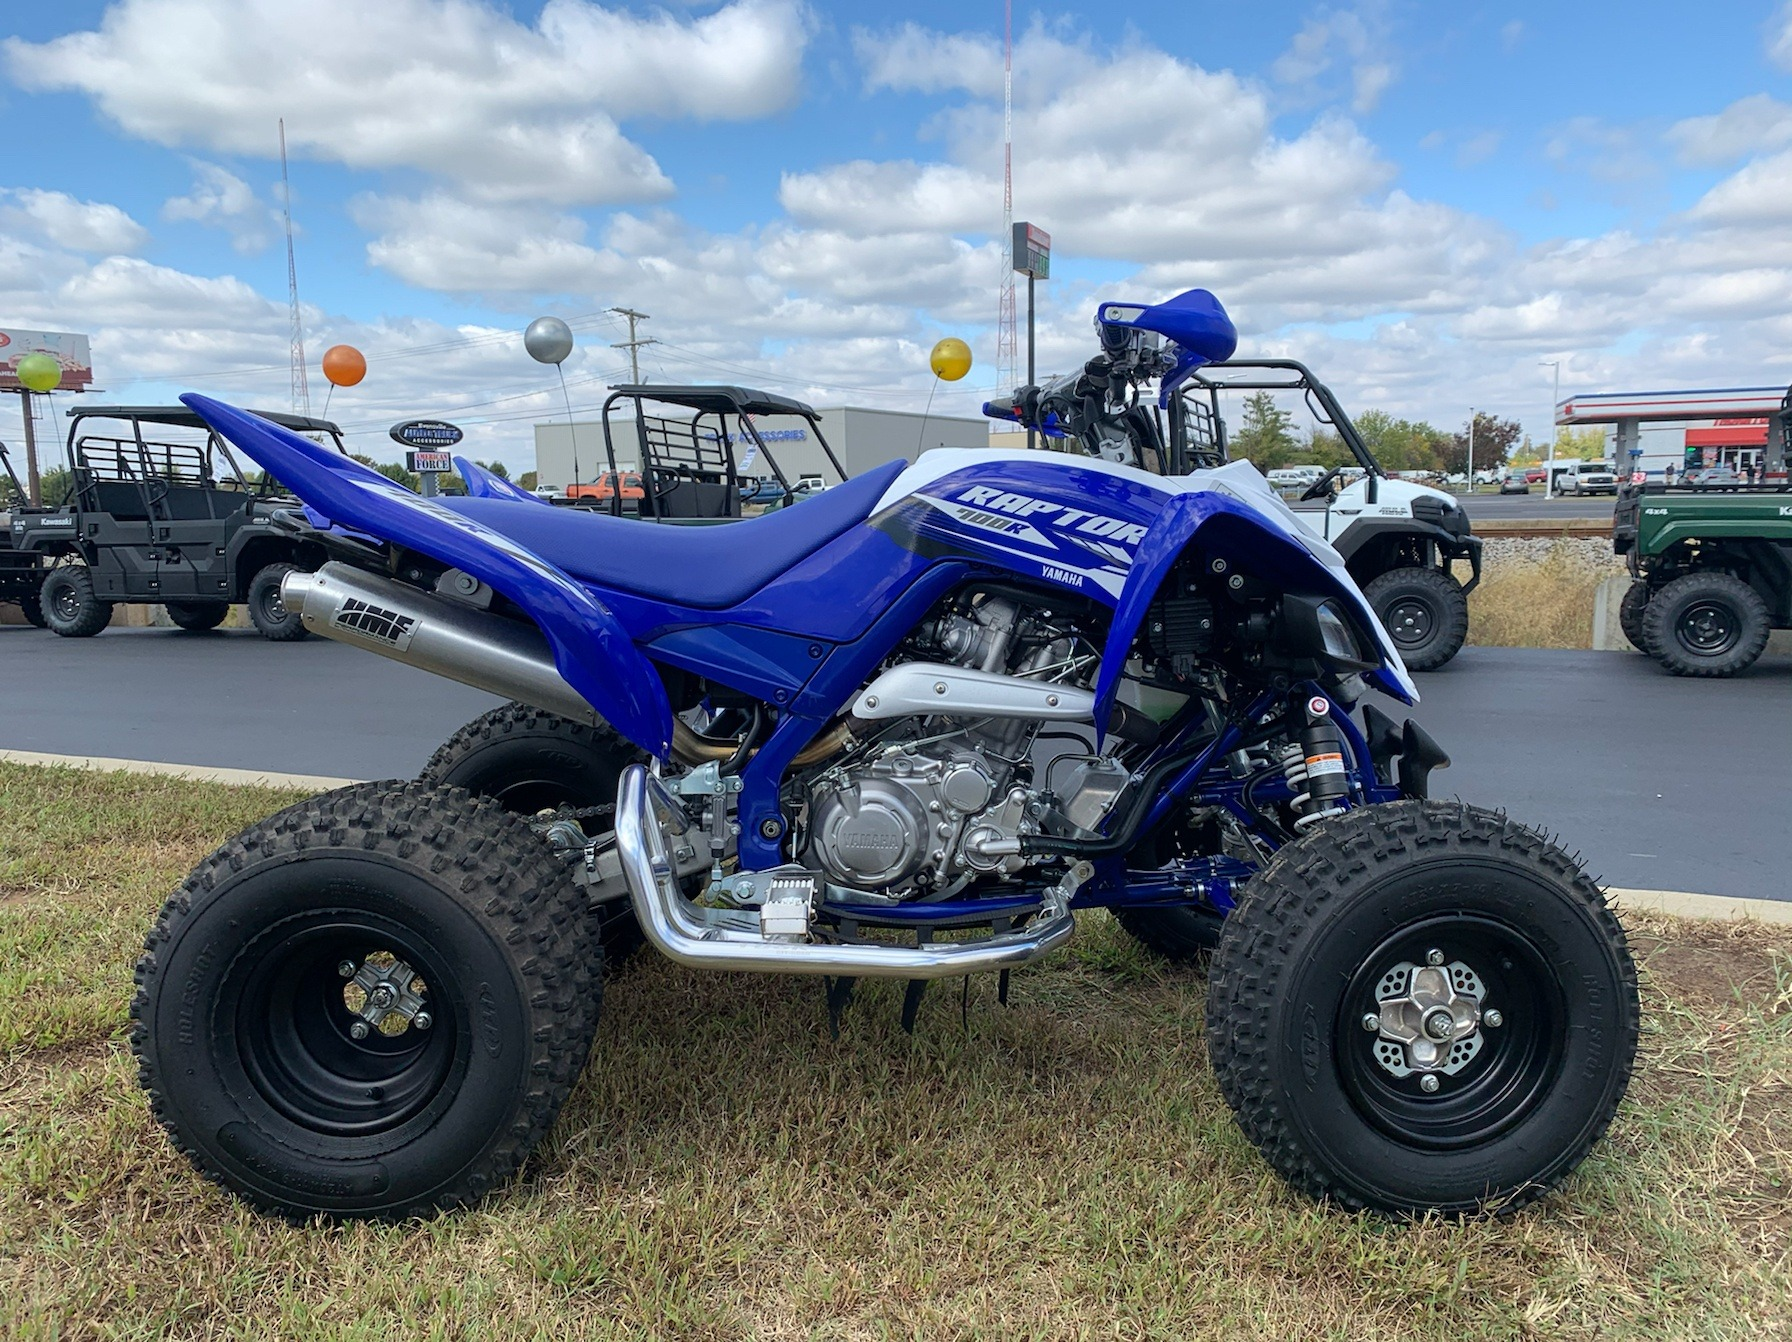 2018 Yamaha Raptor 700R for sale 209328